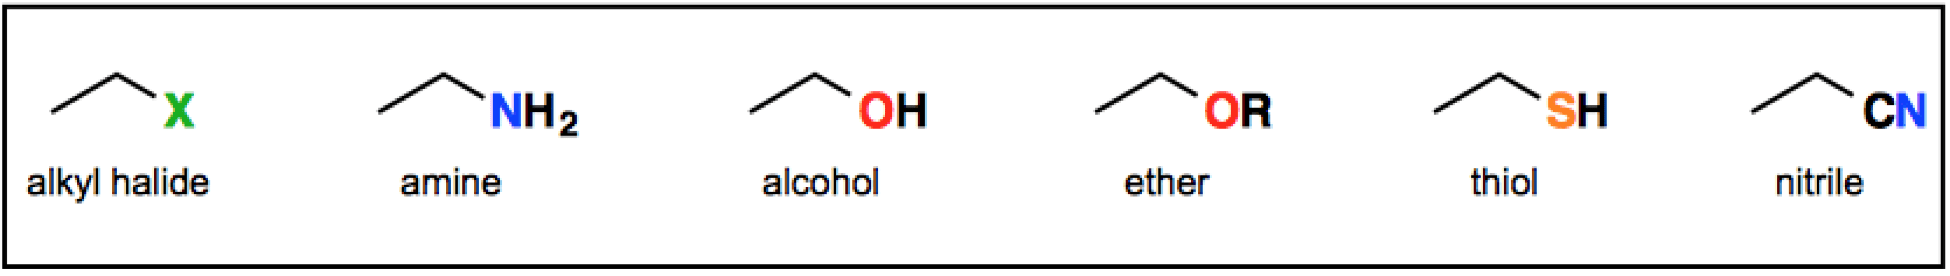 List of functional groups without carbonyls